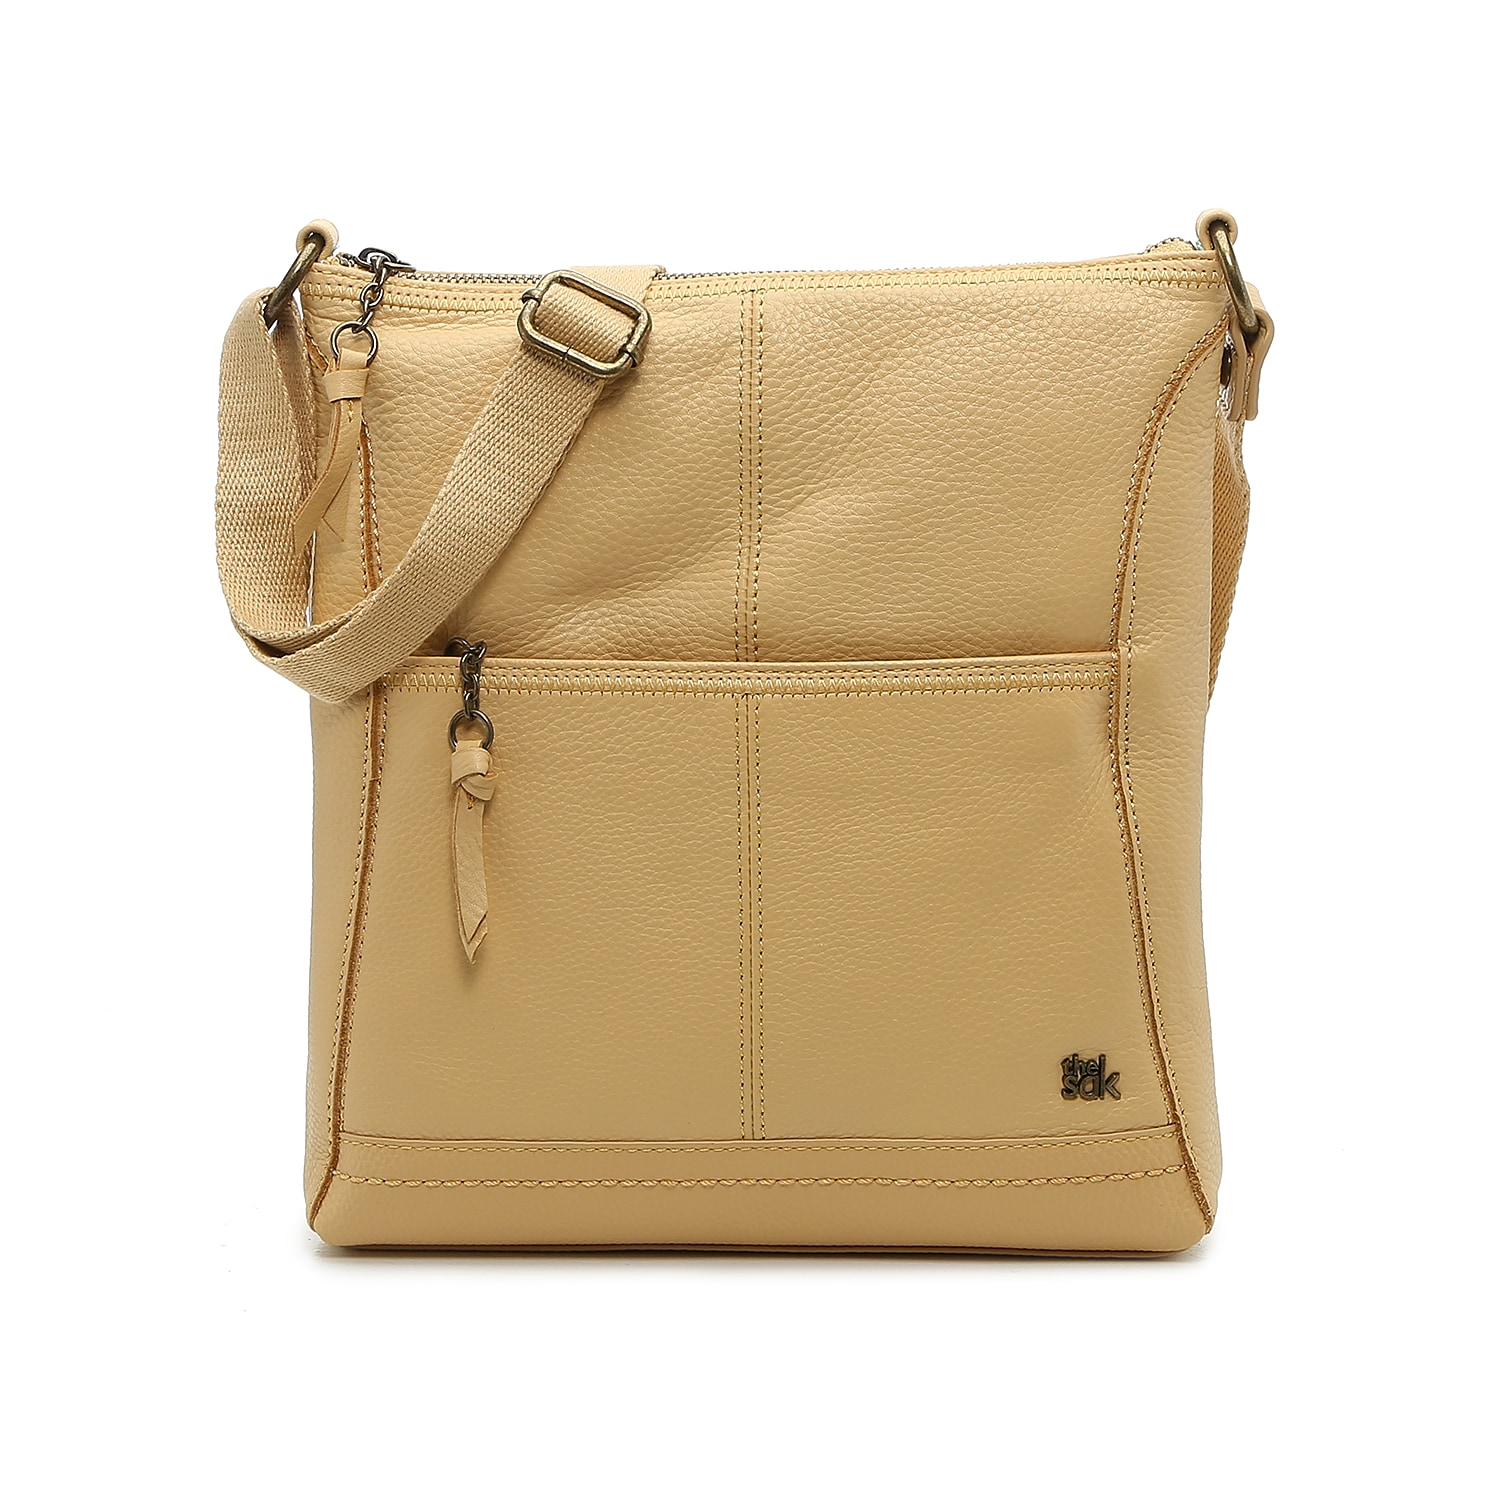 Keep your on-the-go essentials close with the Iris crossbody bag from The Sak. This compact handbag is made from smooth leather for lasting wear.